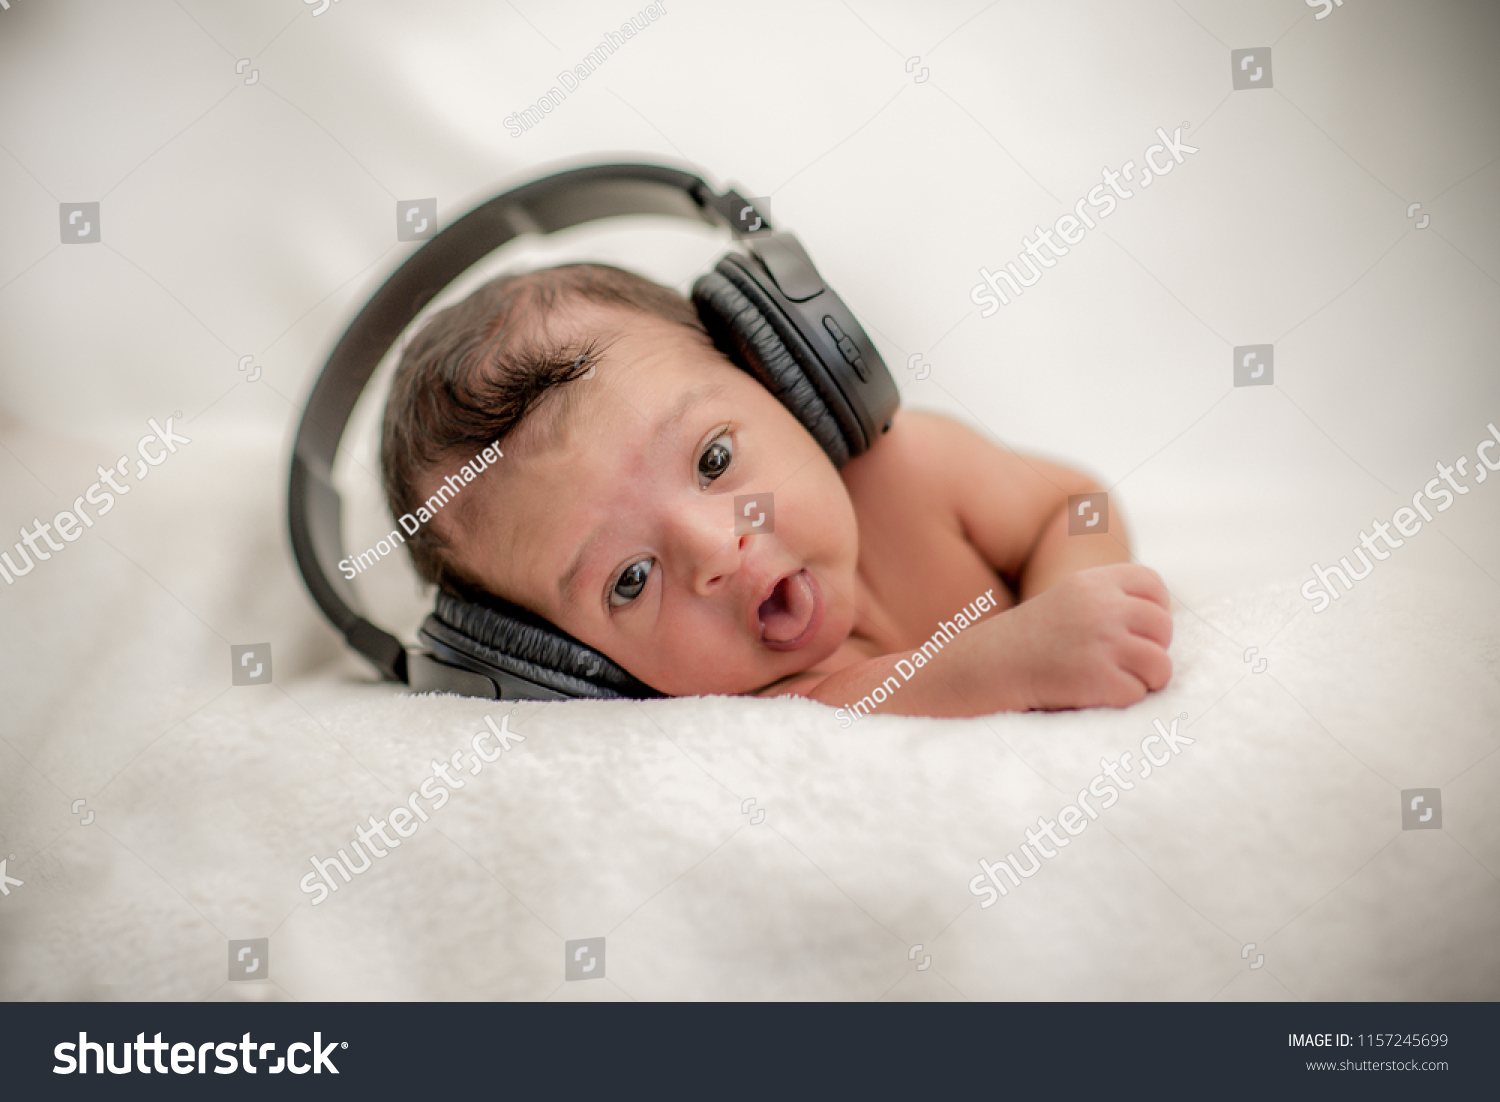 Cute newborn baby hearing music with headphones on a blanket happy family moments